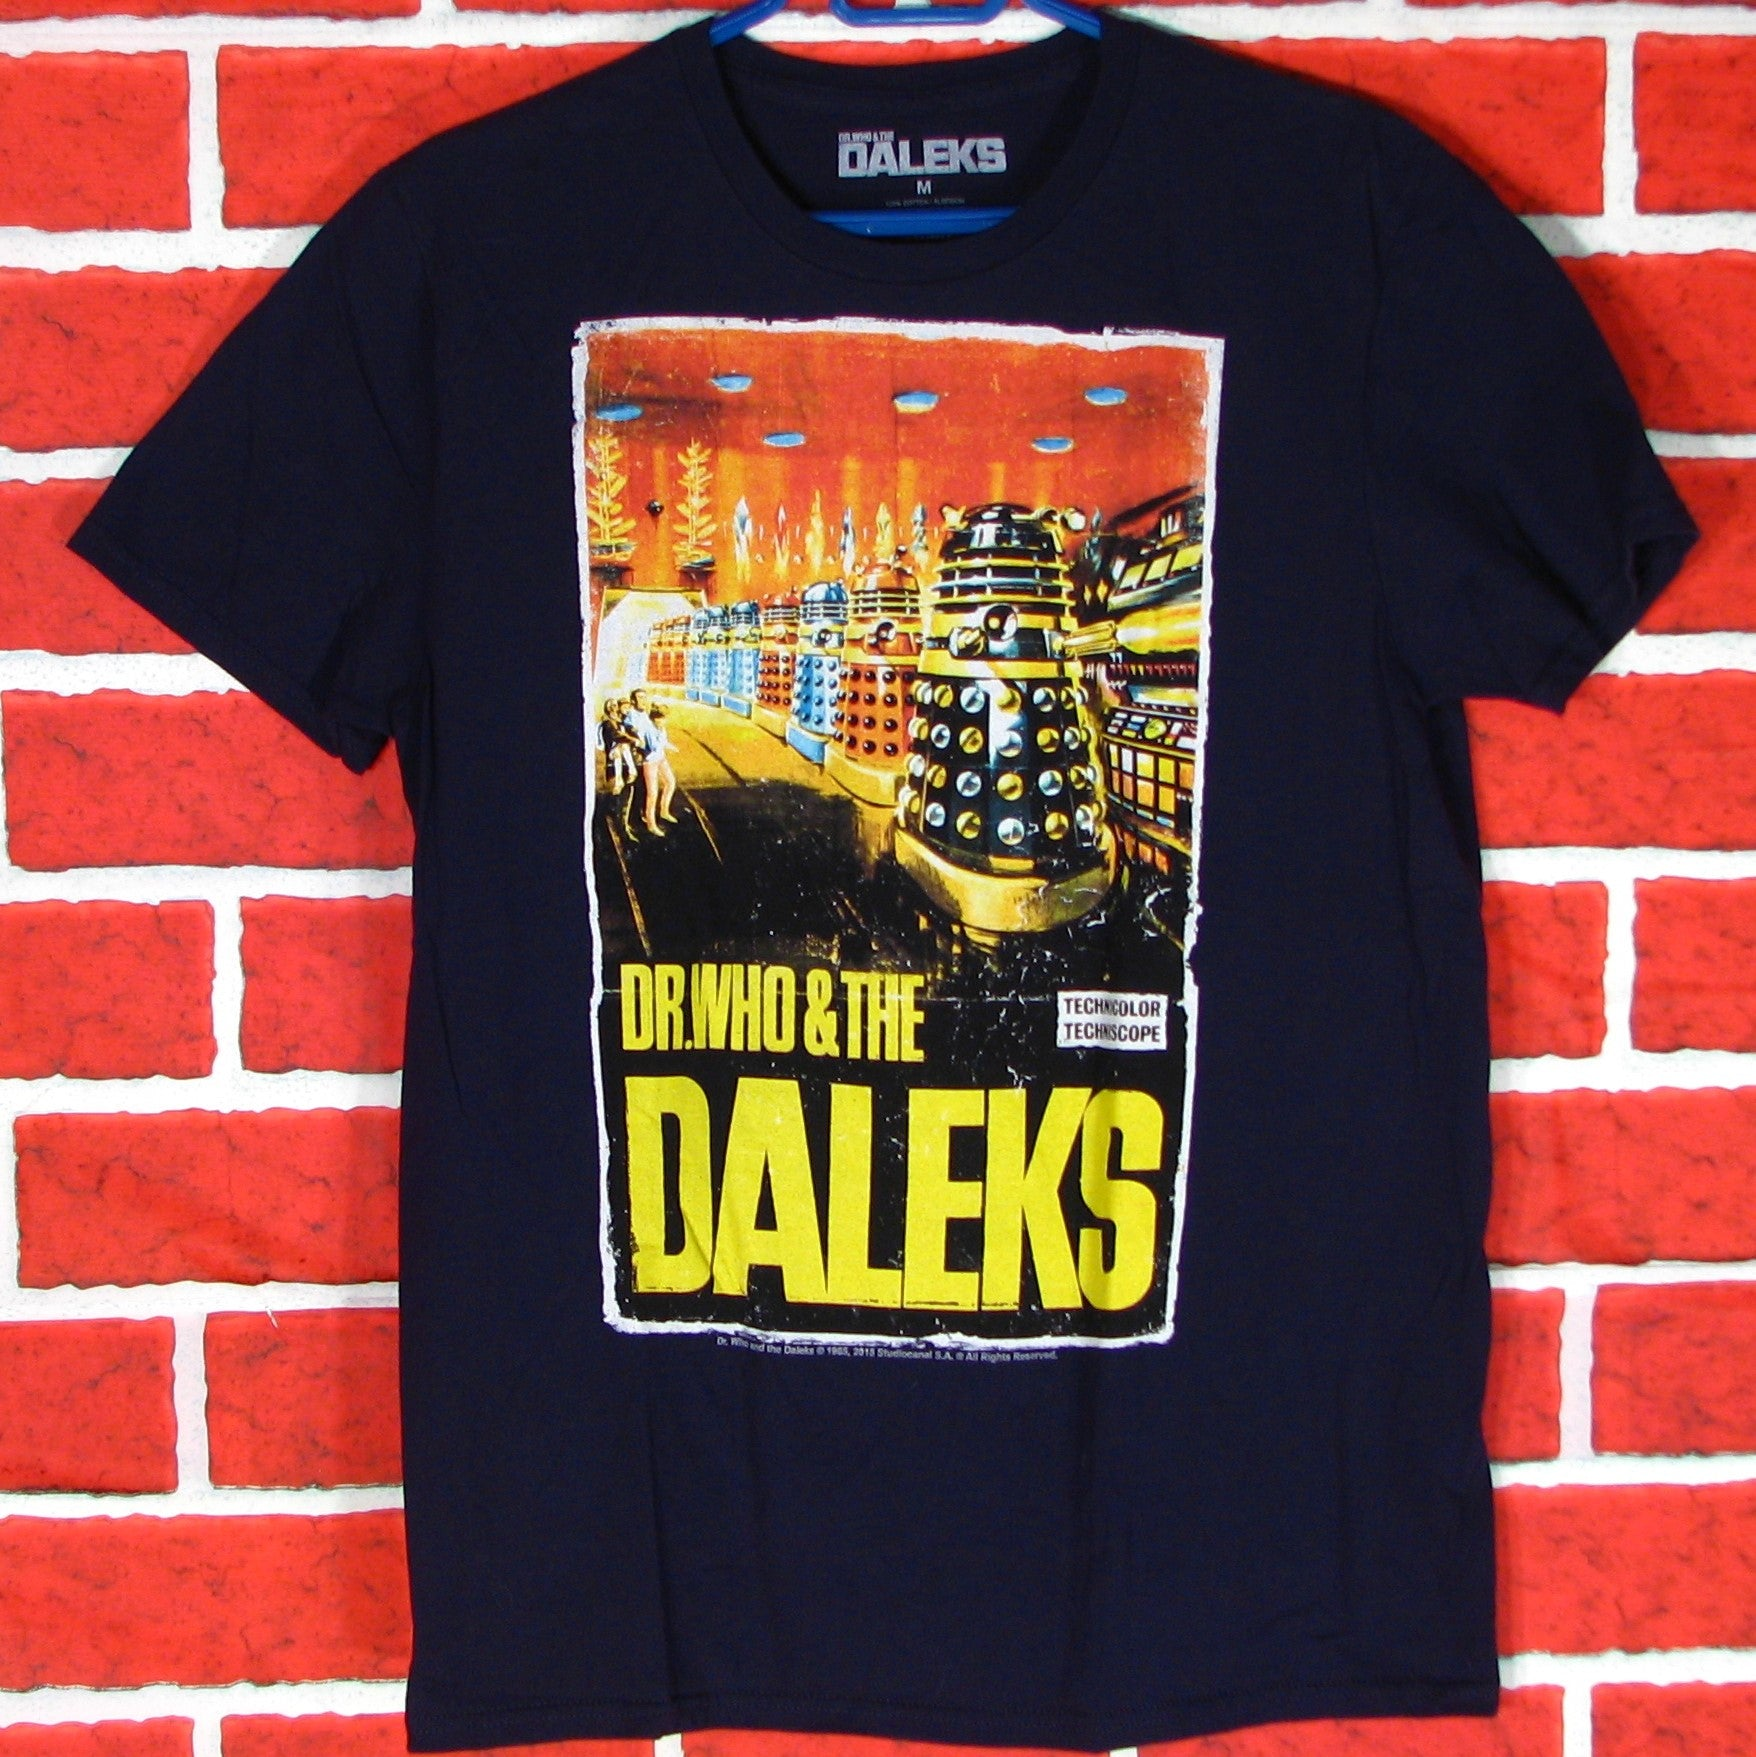 Dr. Who and the Daleks T-Shirt